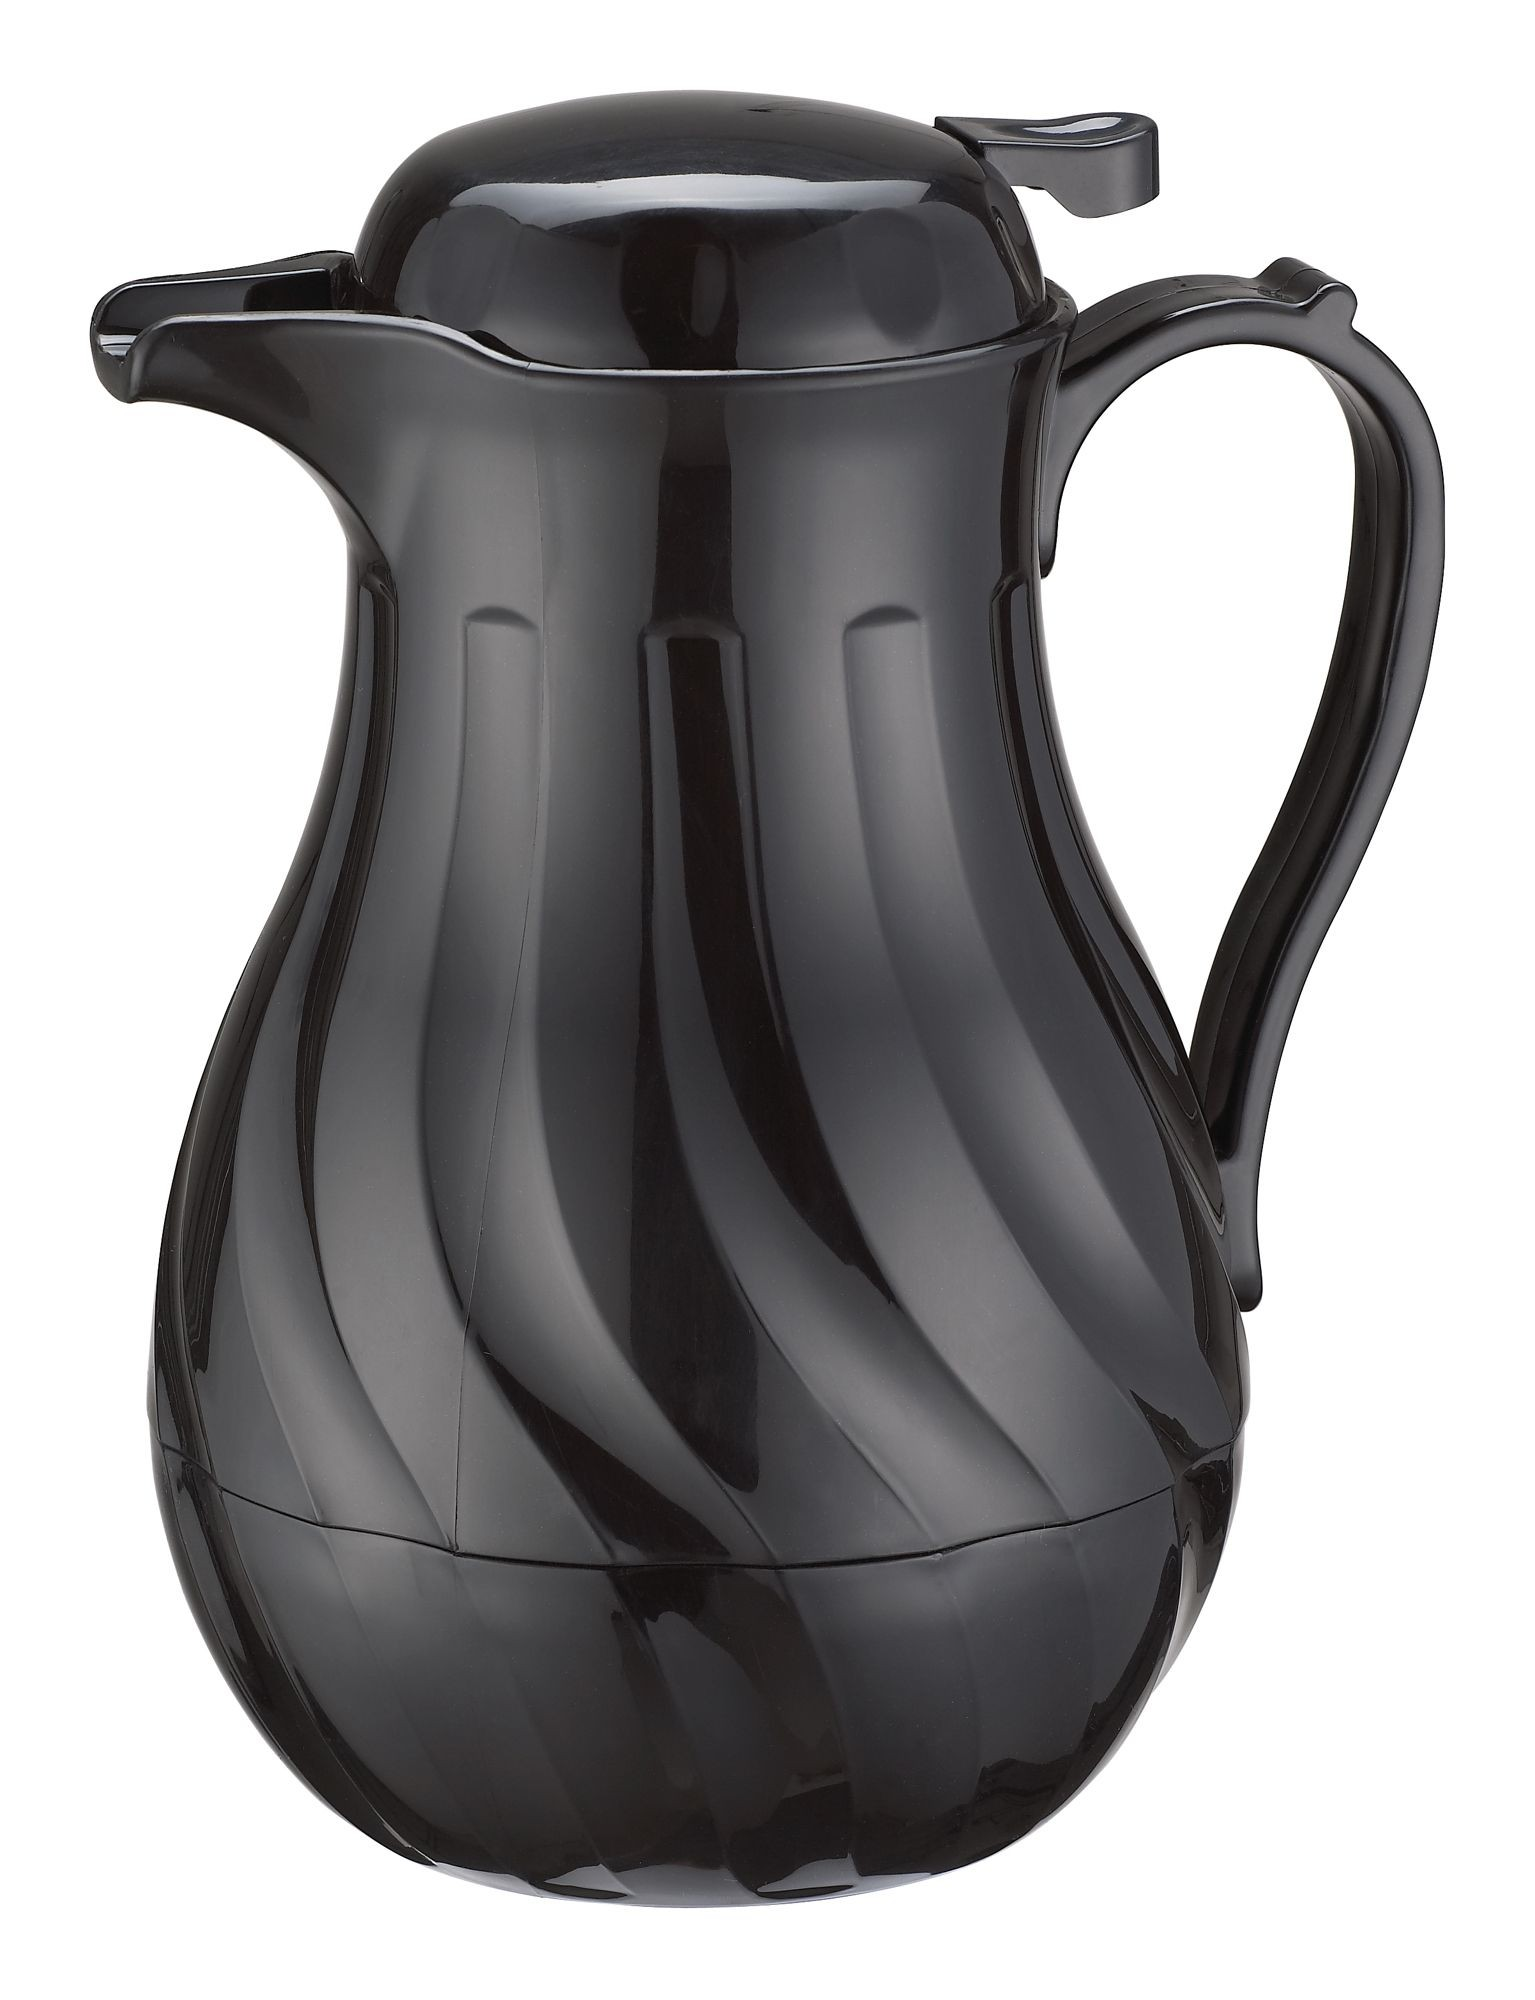 Winco VSW-42K Black Insulated Swirl Design Beverage Server 42 oz.